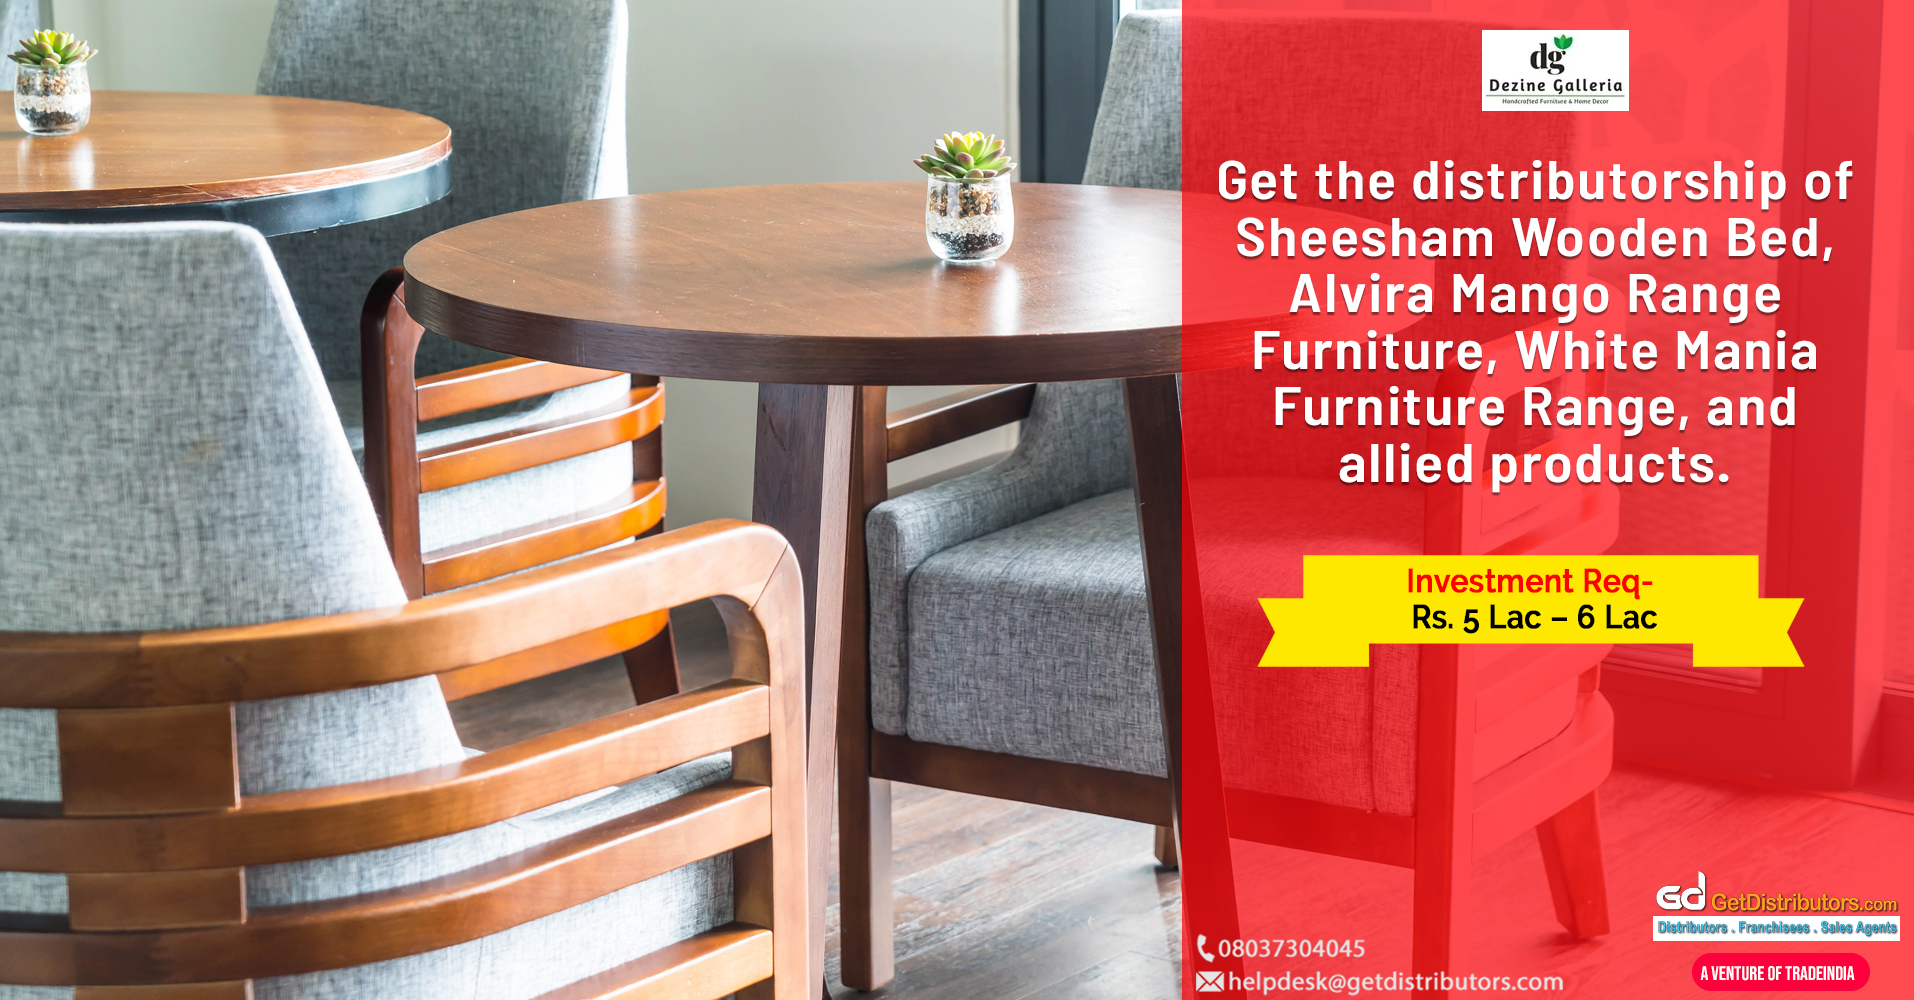 Attractive and durable furniture for distribution